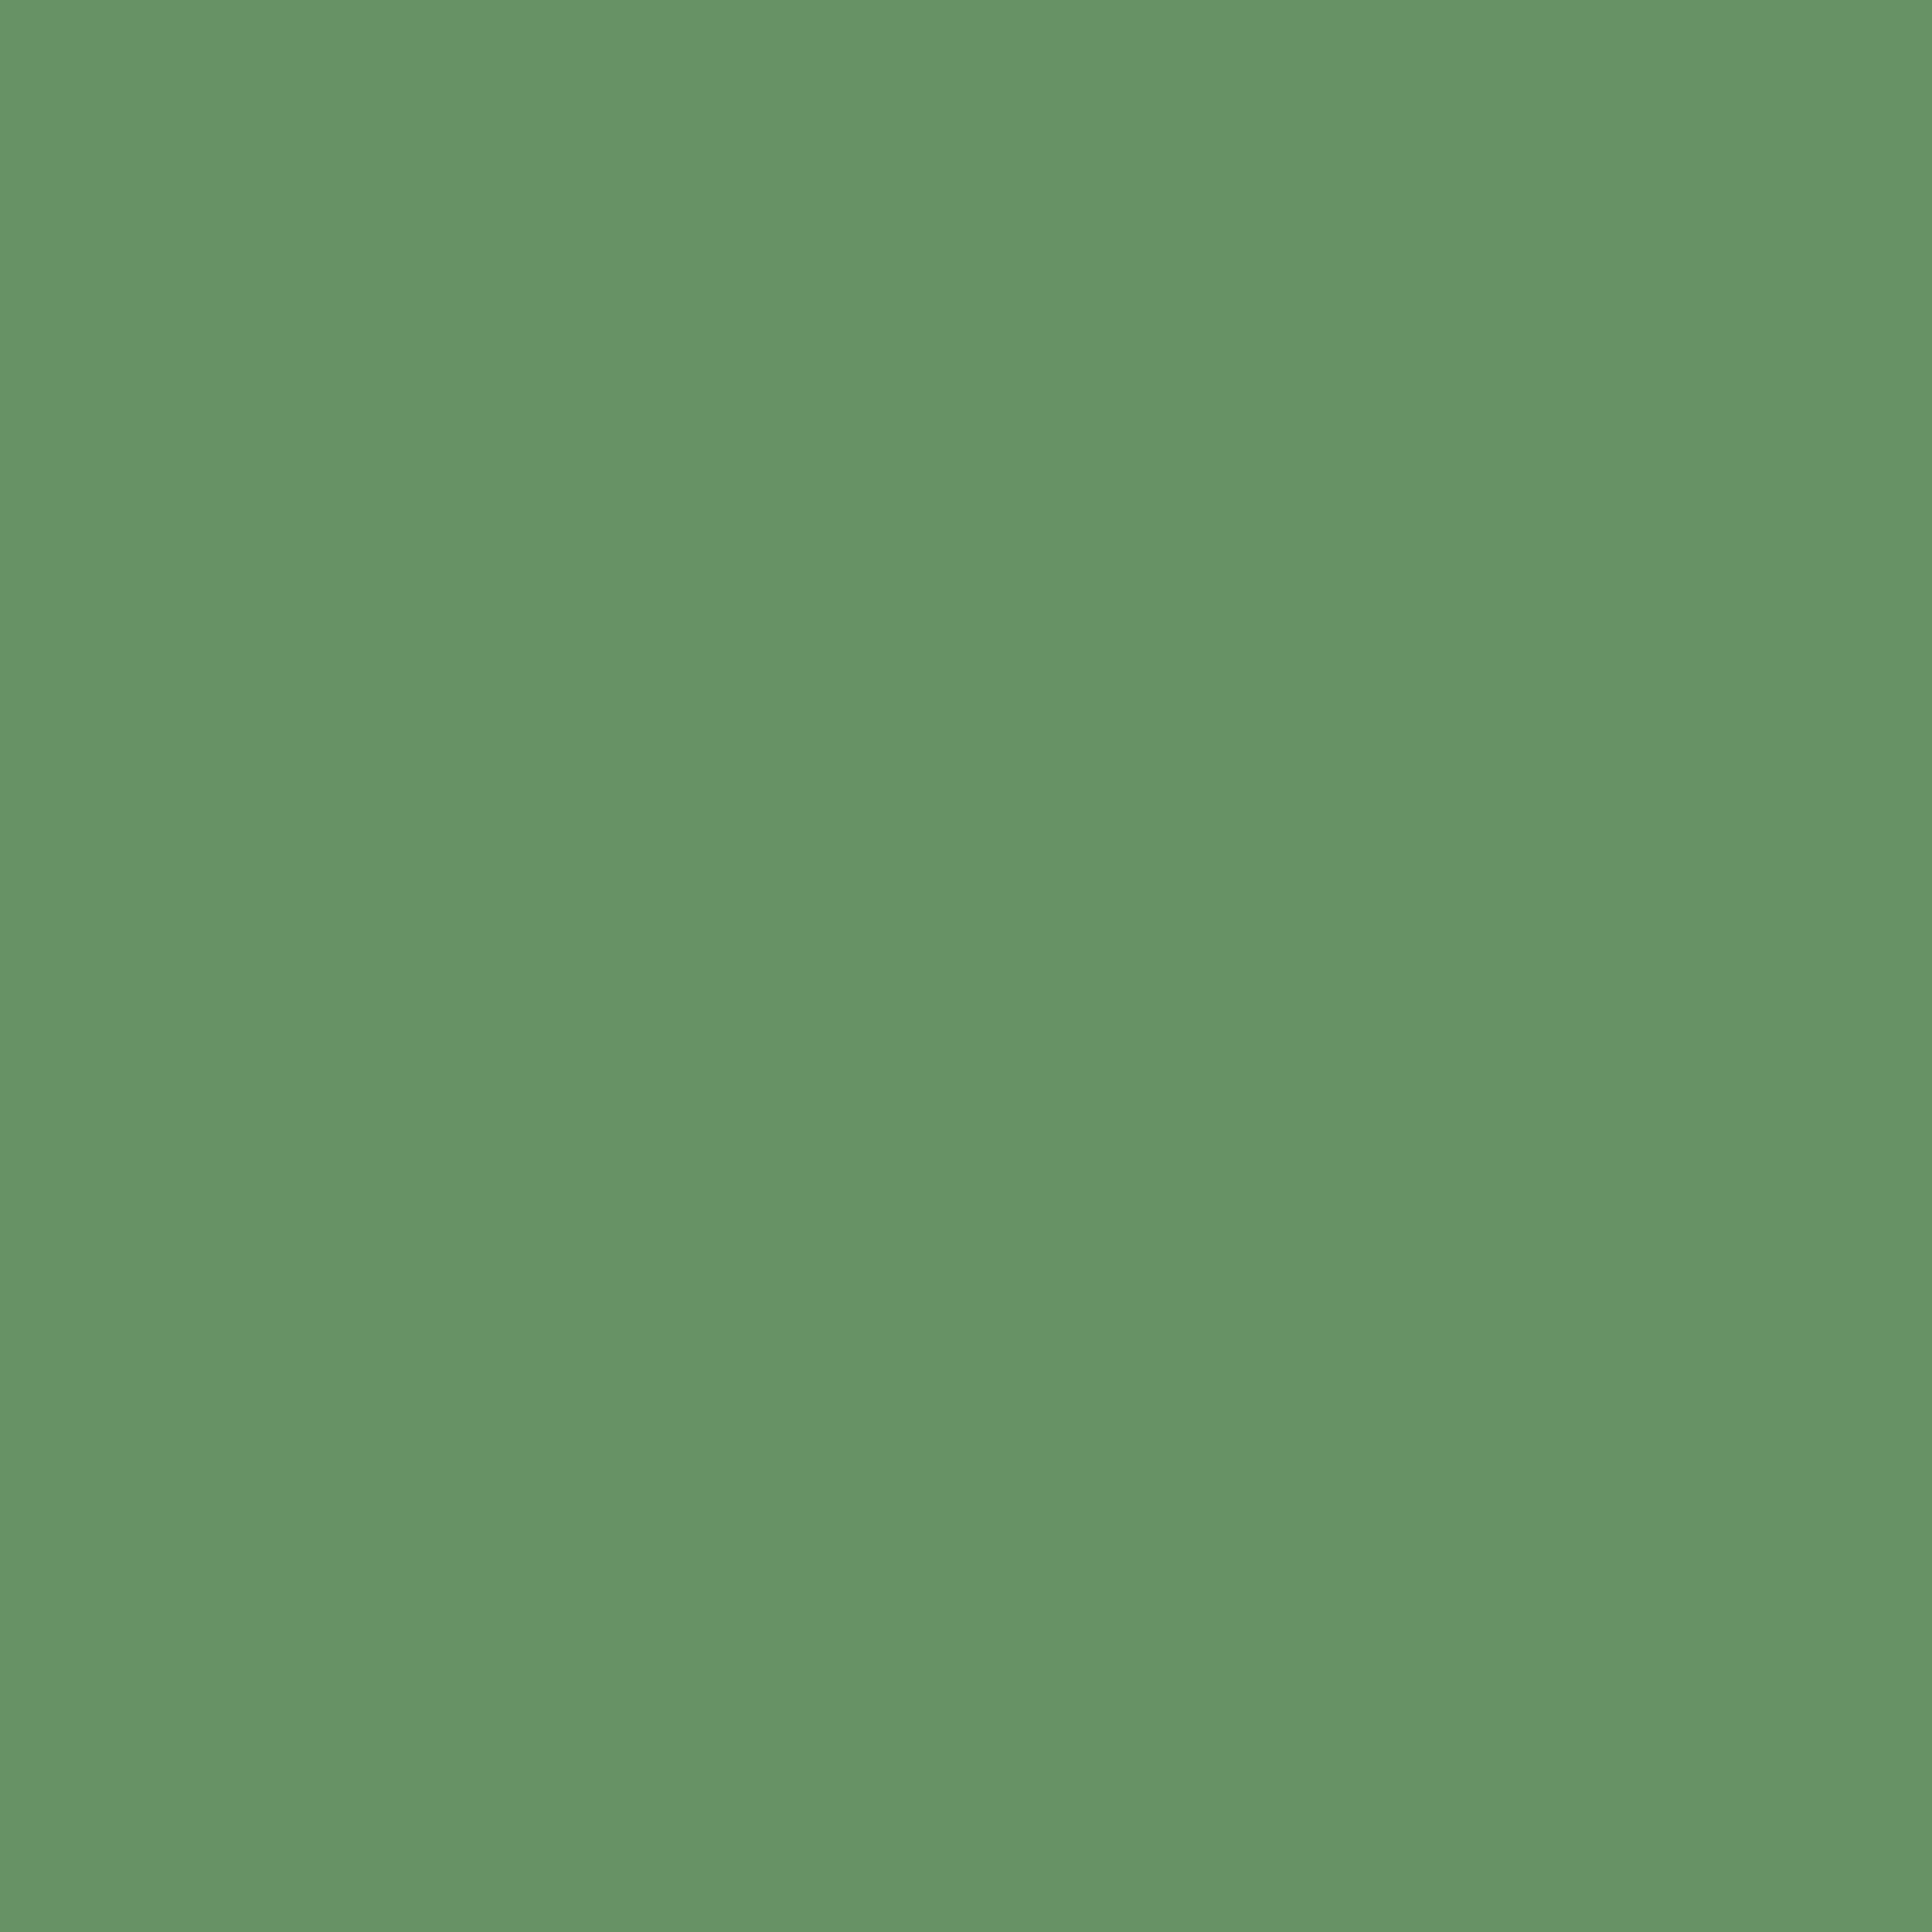 2048x2048 Russian Green Solid Color Background